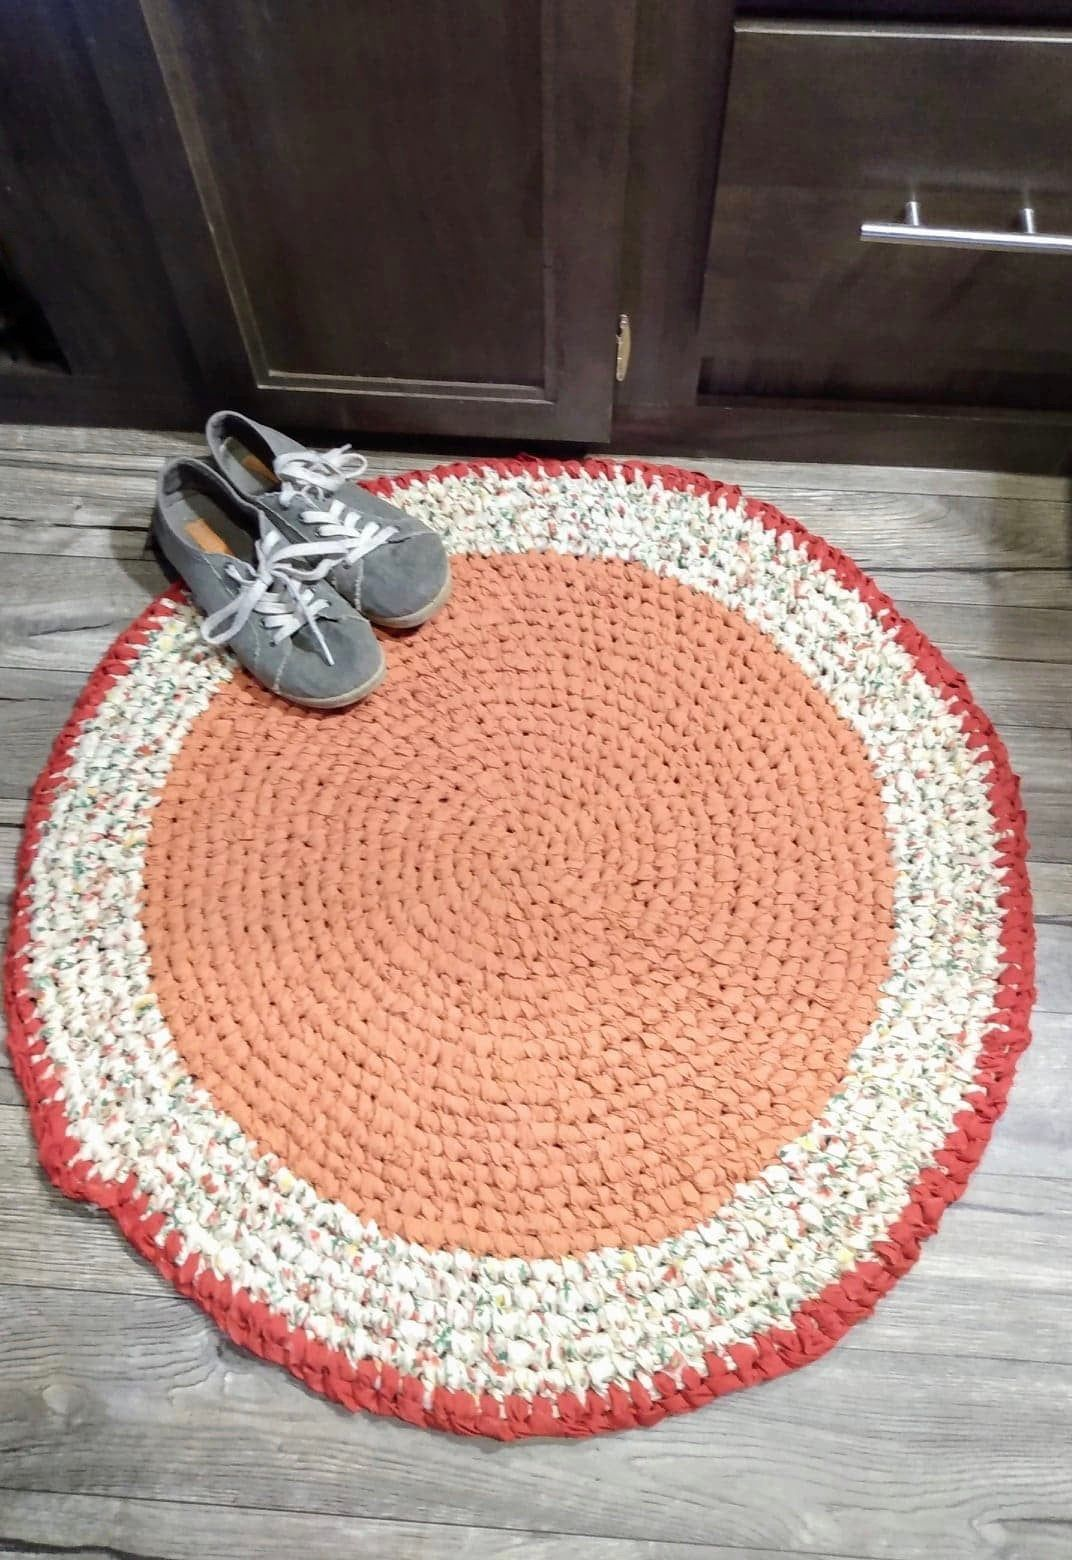 Pale Pumpkin Rag Rug Round Toothbrush Amish Knotted Outer Ring A Coordinating Reddish Orange Fall Kitchen Entry Bathroom Machine Wash Rag Rug Rugs Rug Making